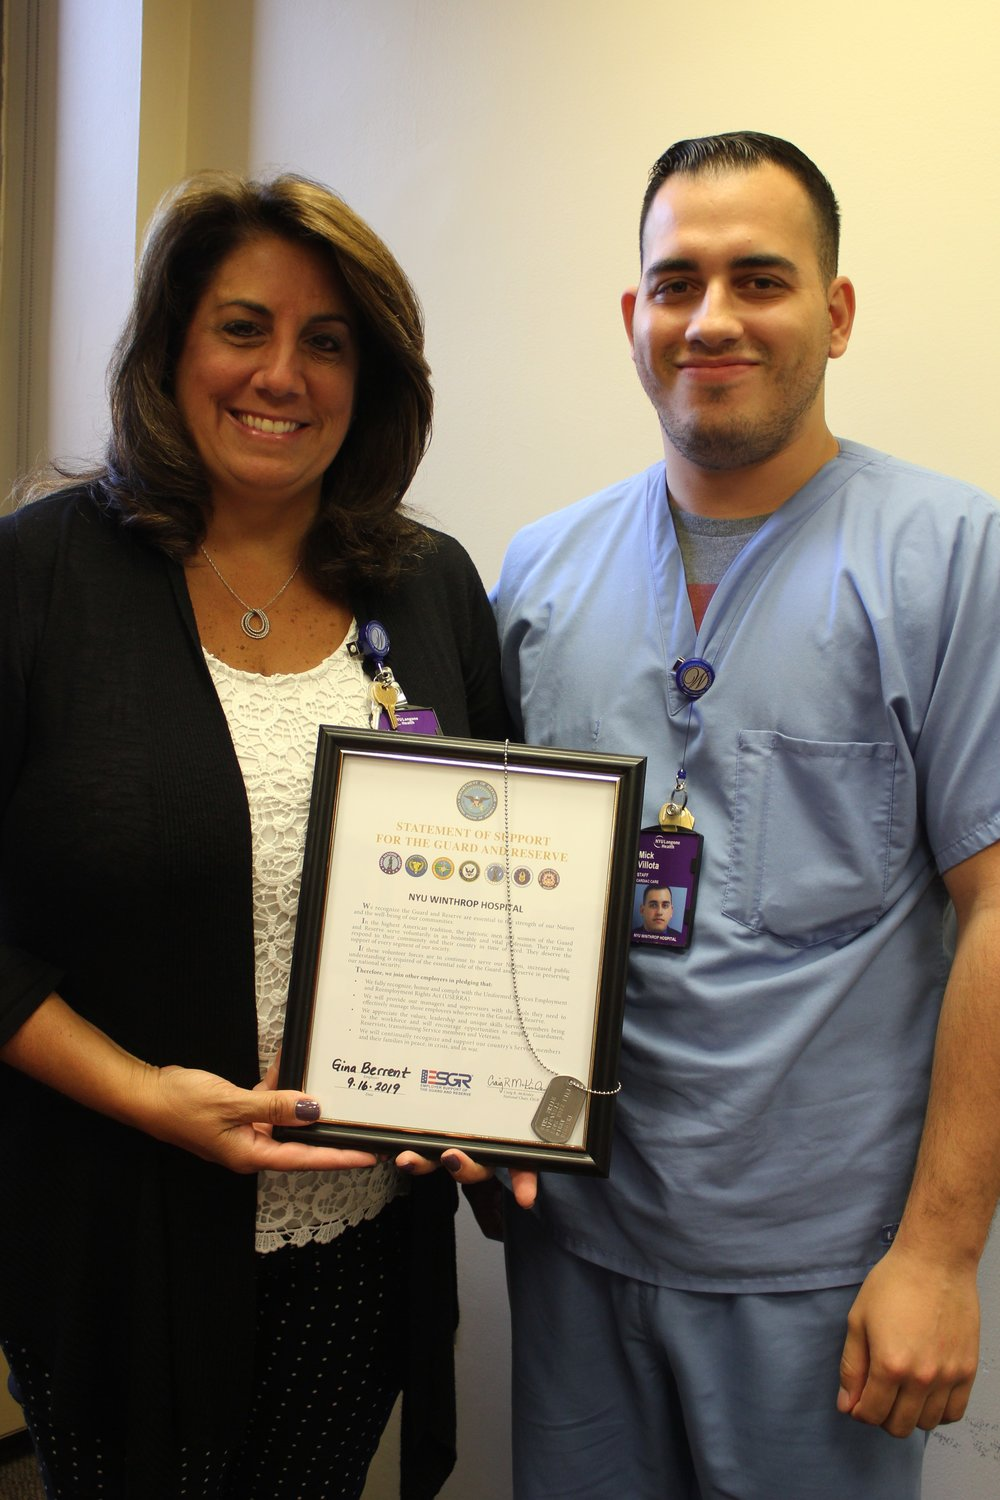 "West Hempstead resident Mick Villota, Cath Lab Unit Support Associate at NYU Winthrop Hospital, surprised his colleague, Gina Berrent, by nominating her for a one-day ""boss lift"" to the New York National Guard's Camp Smith Training Site in Peekskill, N.Y."